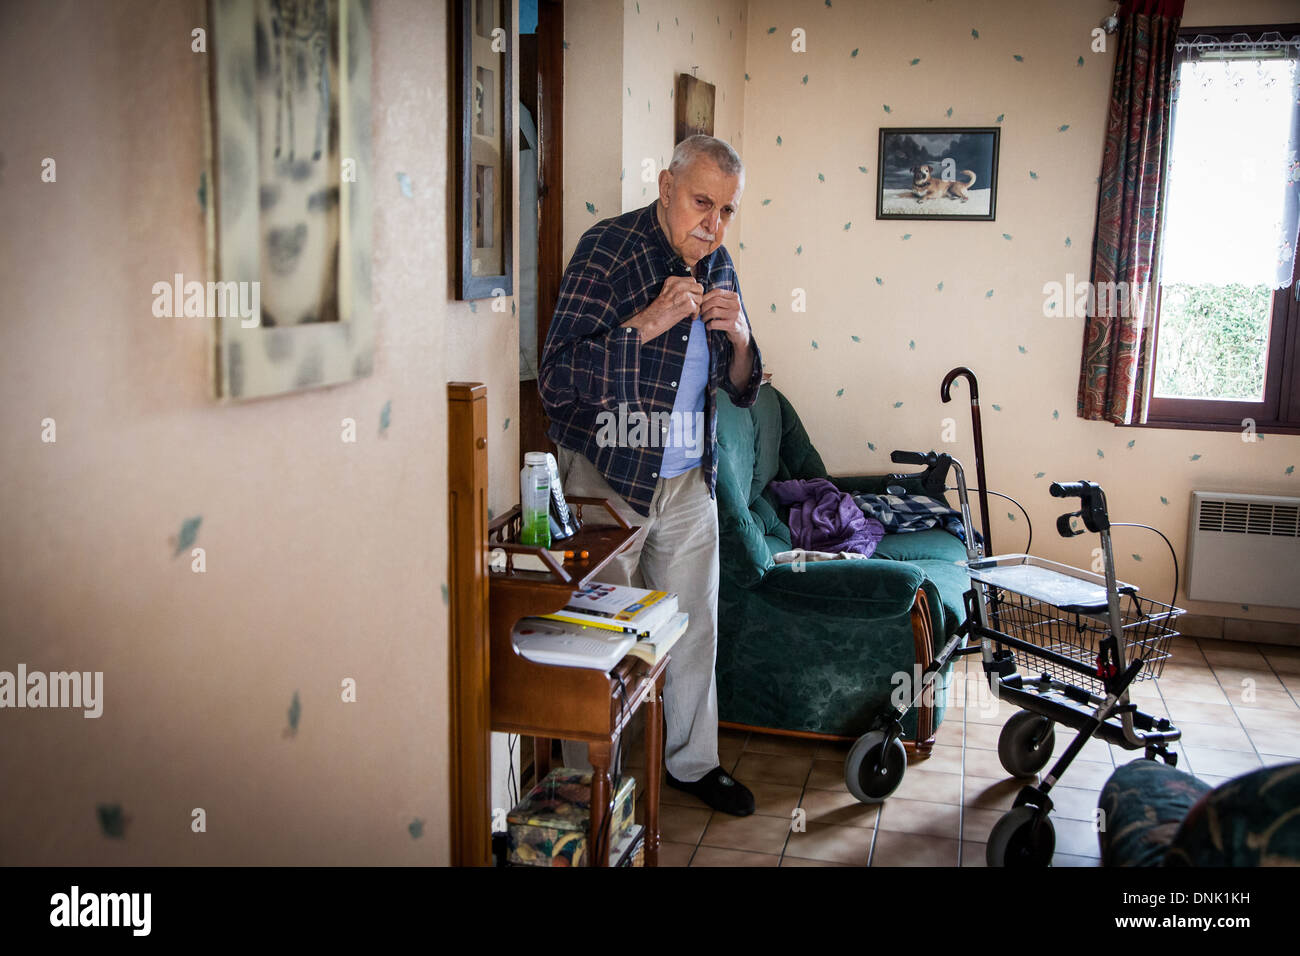 ILLUSTRATION OF AGEING AT HOME, ELDERLY PERSON AT HOME GETTING DRESSED - Stock Image